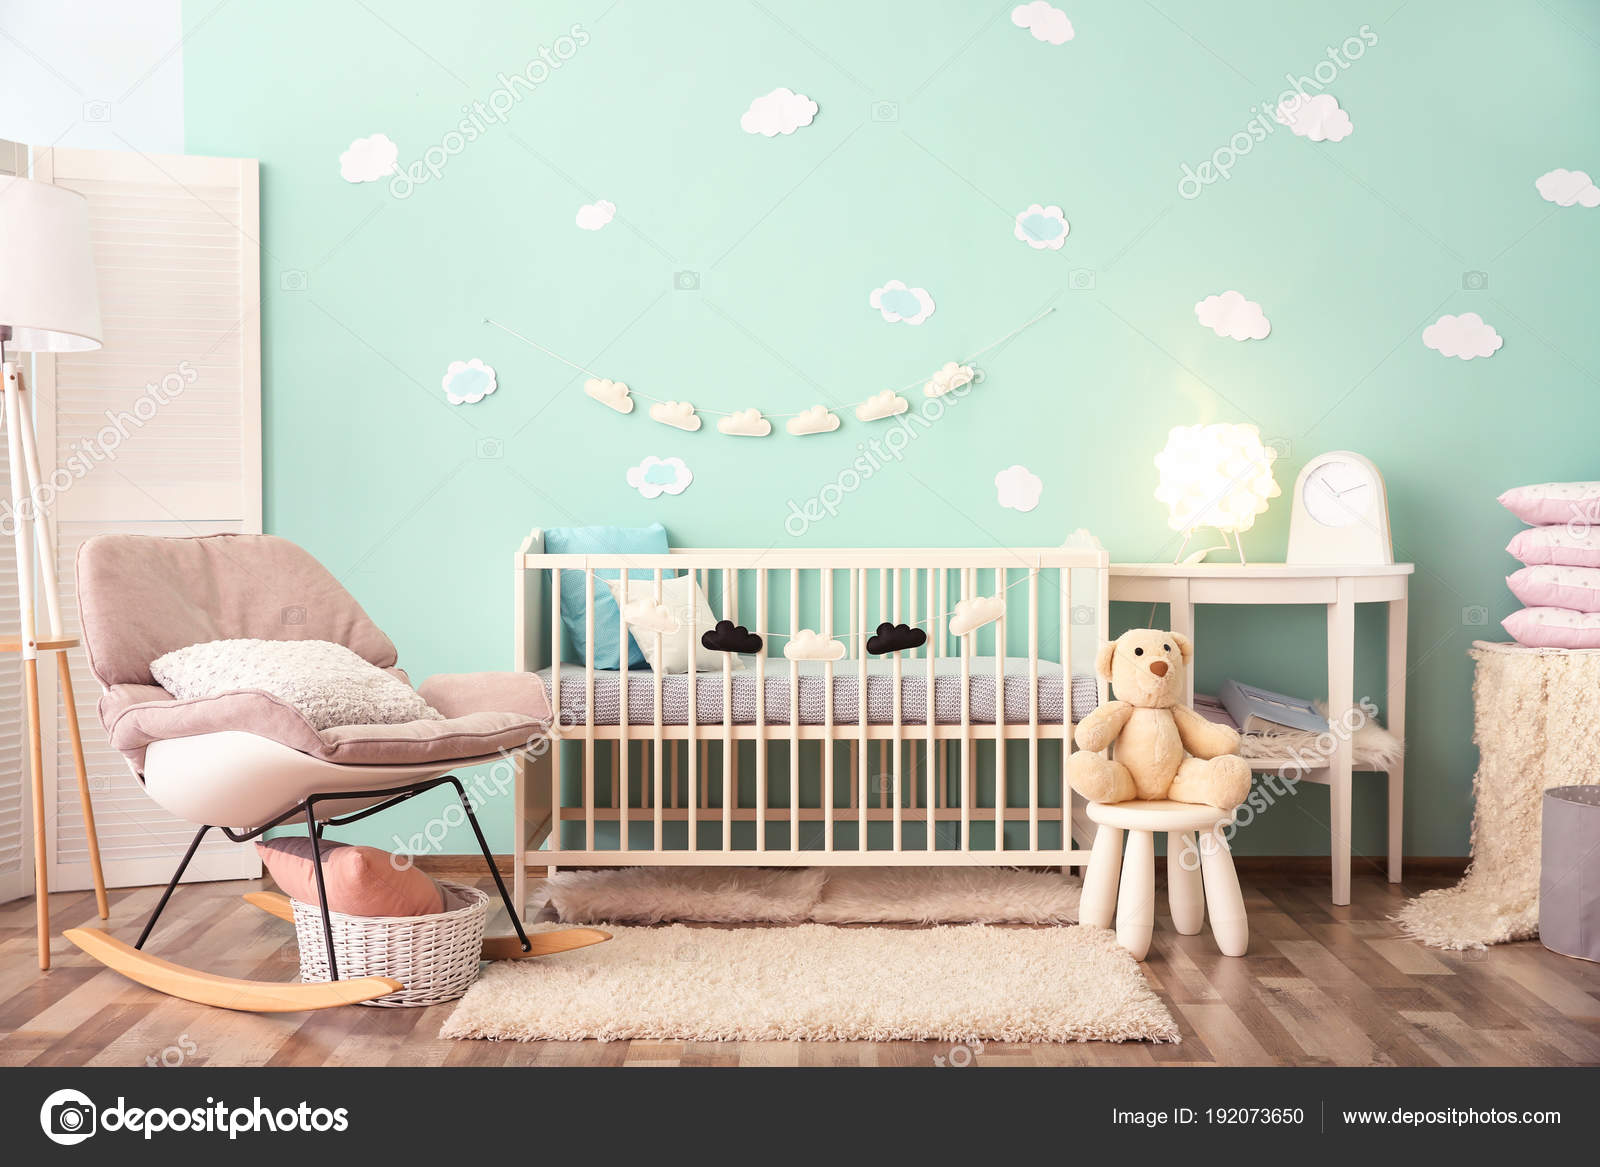 Modern baby room interior with crib and rocking chair 23